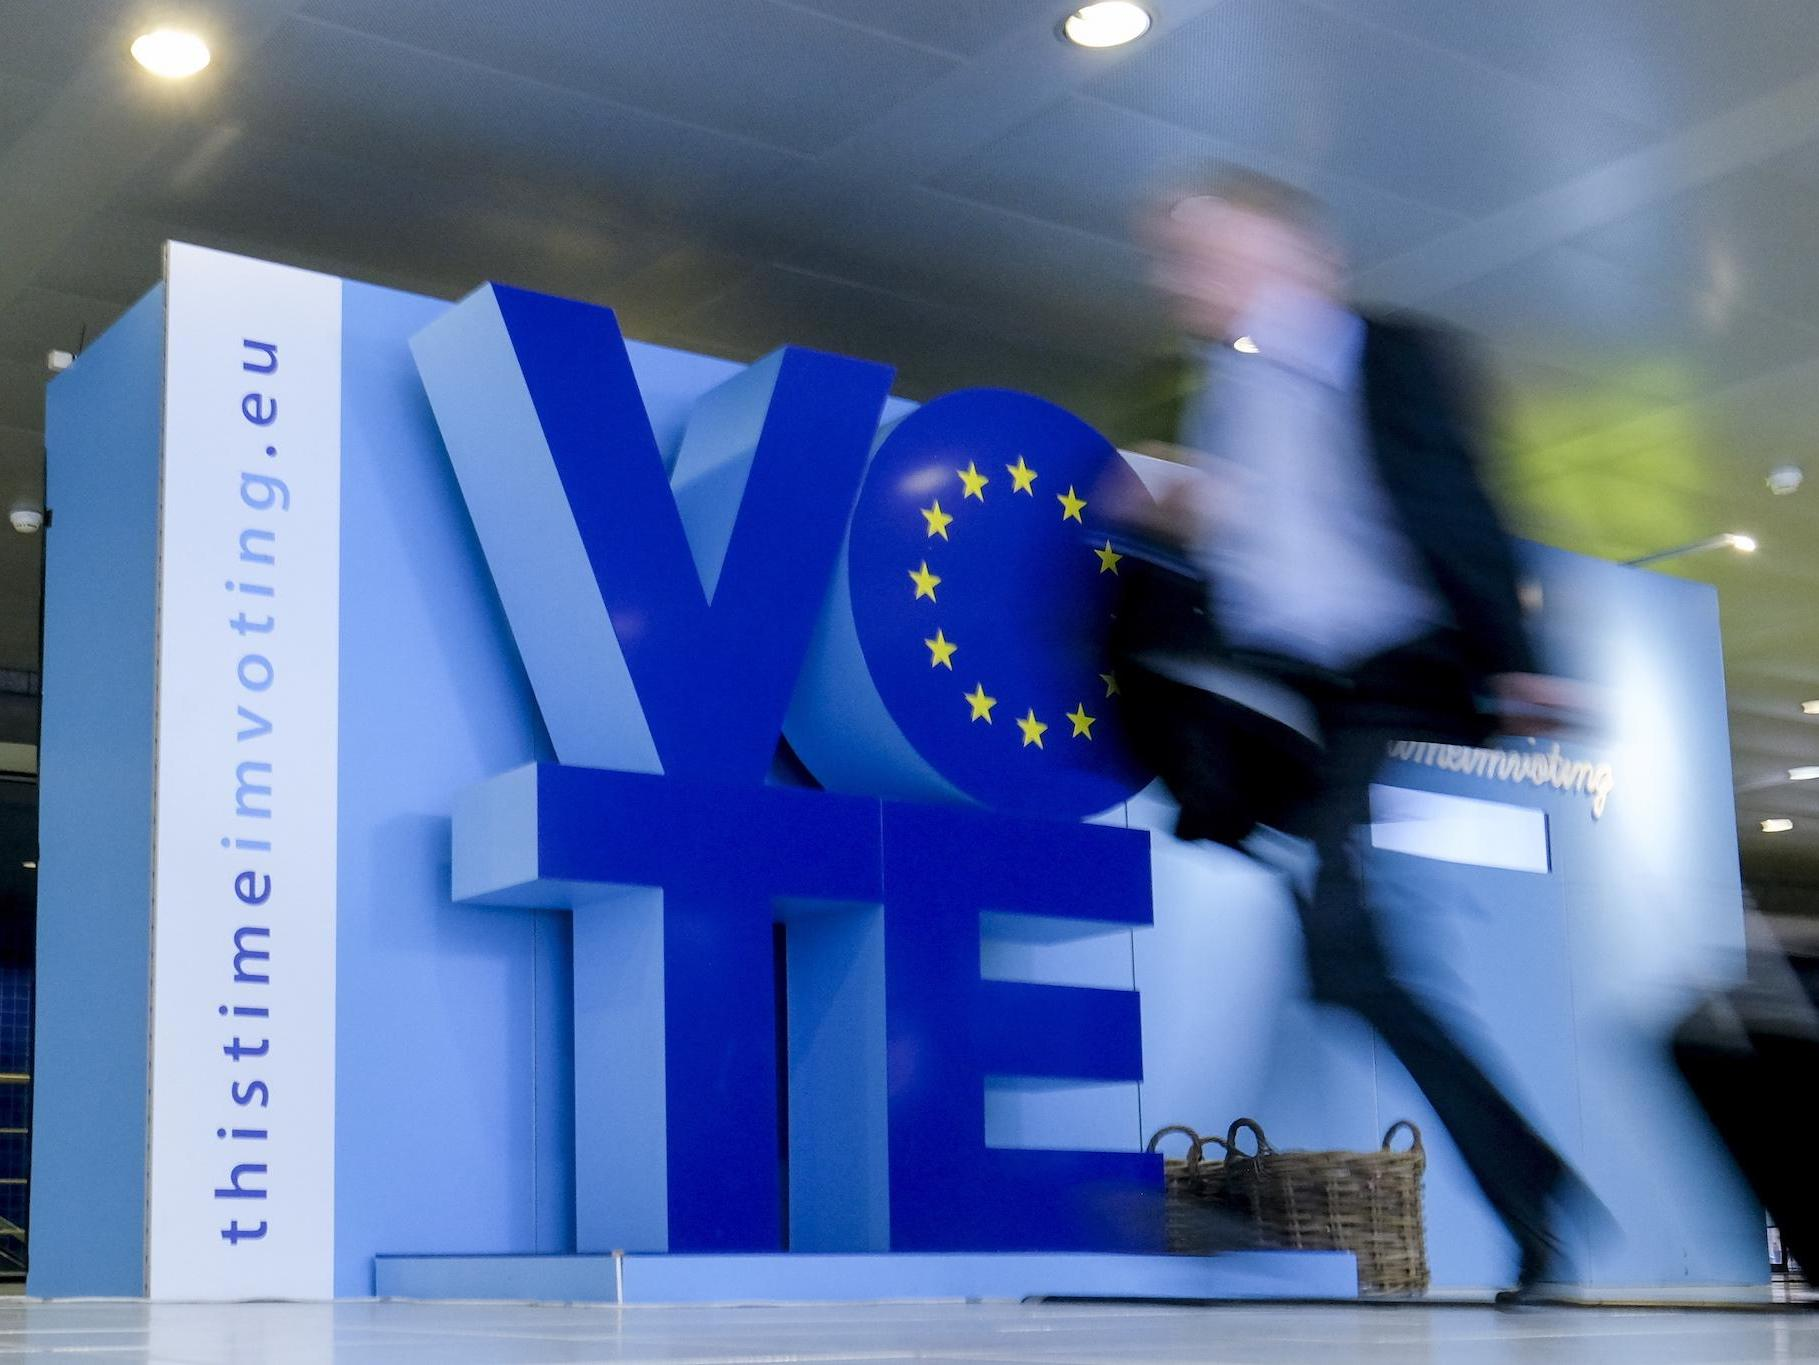 European Elections: Huge Far-right Disinformation Network Targeting Voters Found on Facebook